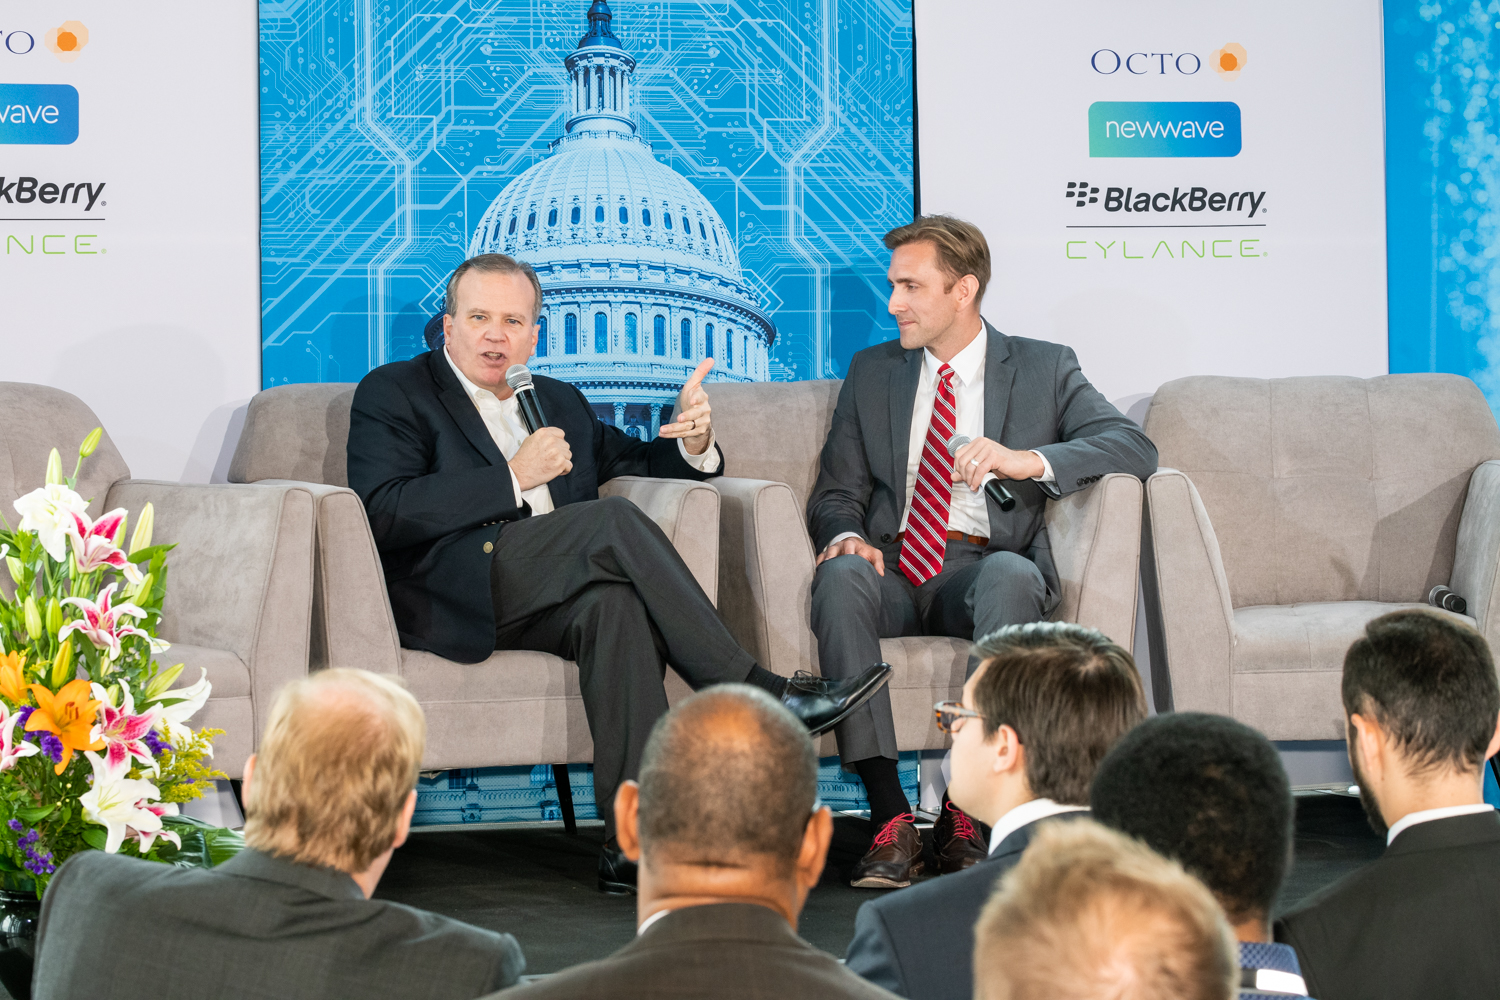 BlackBerry Cylance's John McClurg talks proactive cybersecurity at State of Cyber CXO Tech Forum